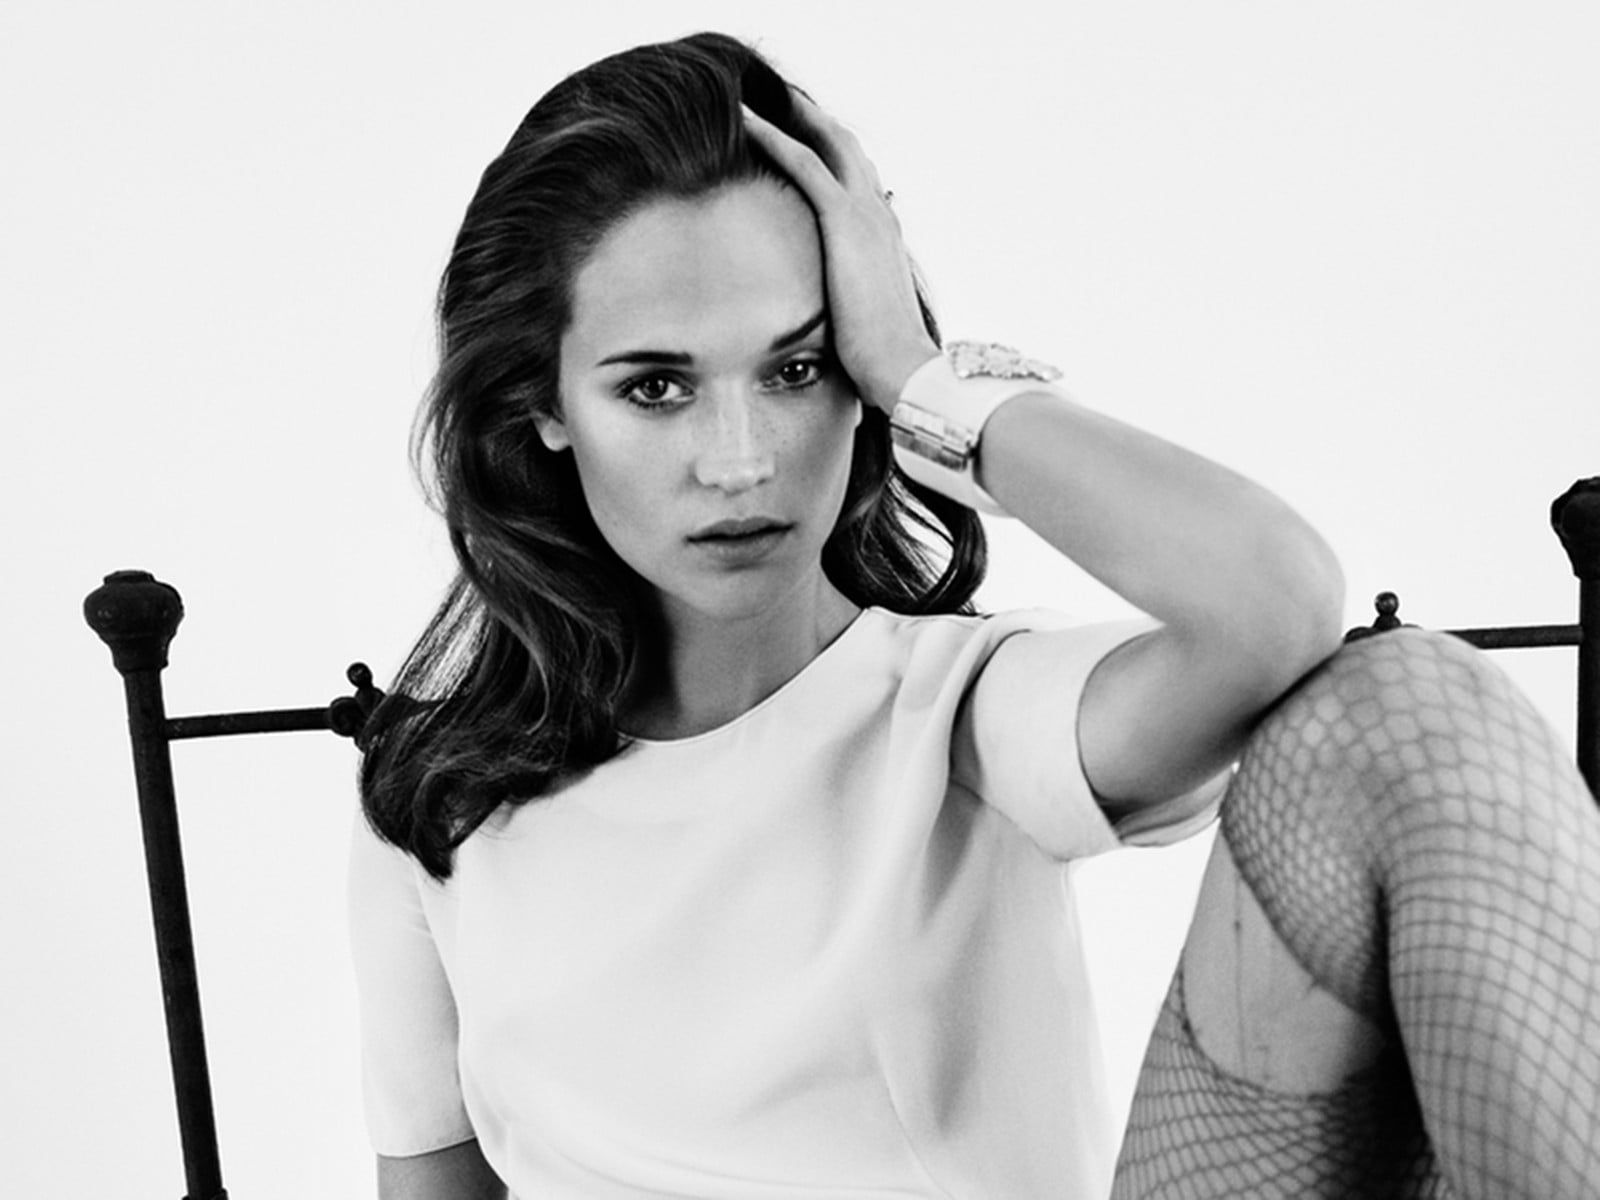 Alicia Vikander bw 1920x1080 wallpaper